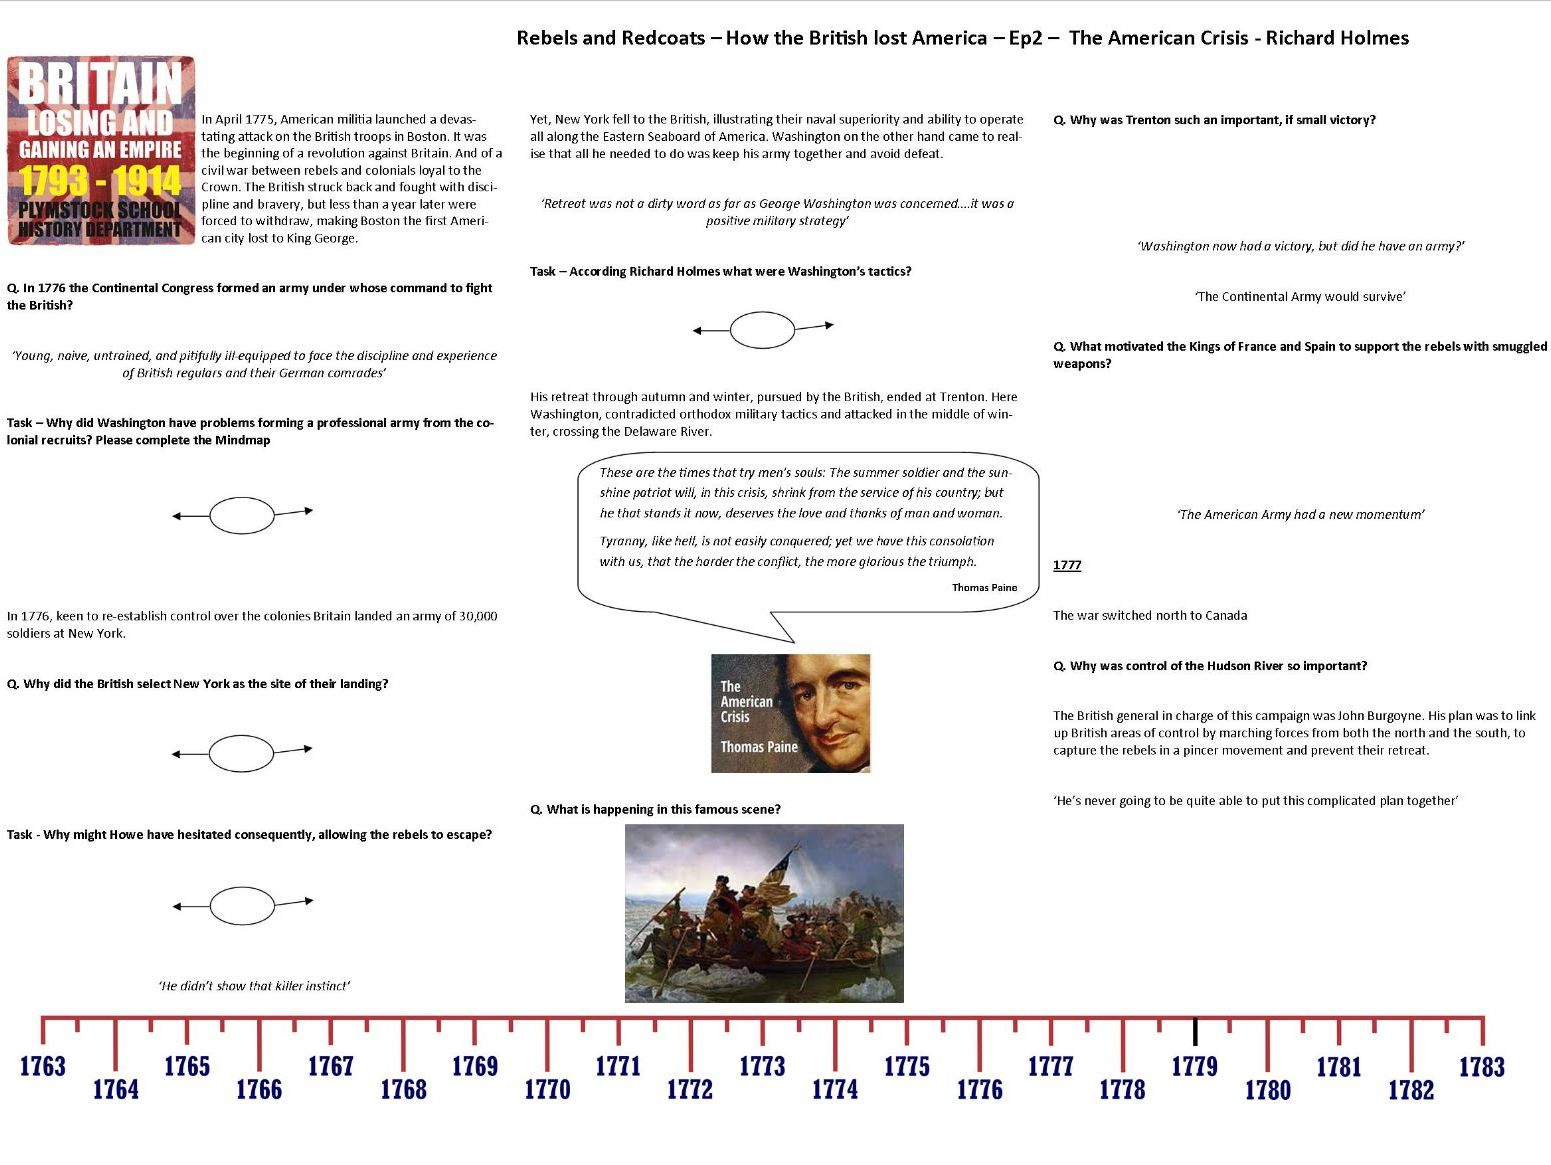 Rebels and Redcoats - Worksheets to support the BBC Richard Holmes documentary